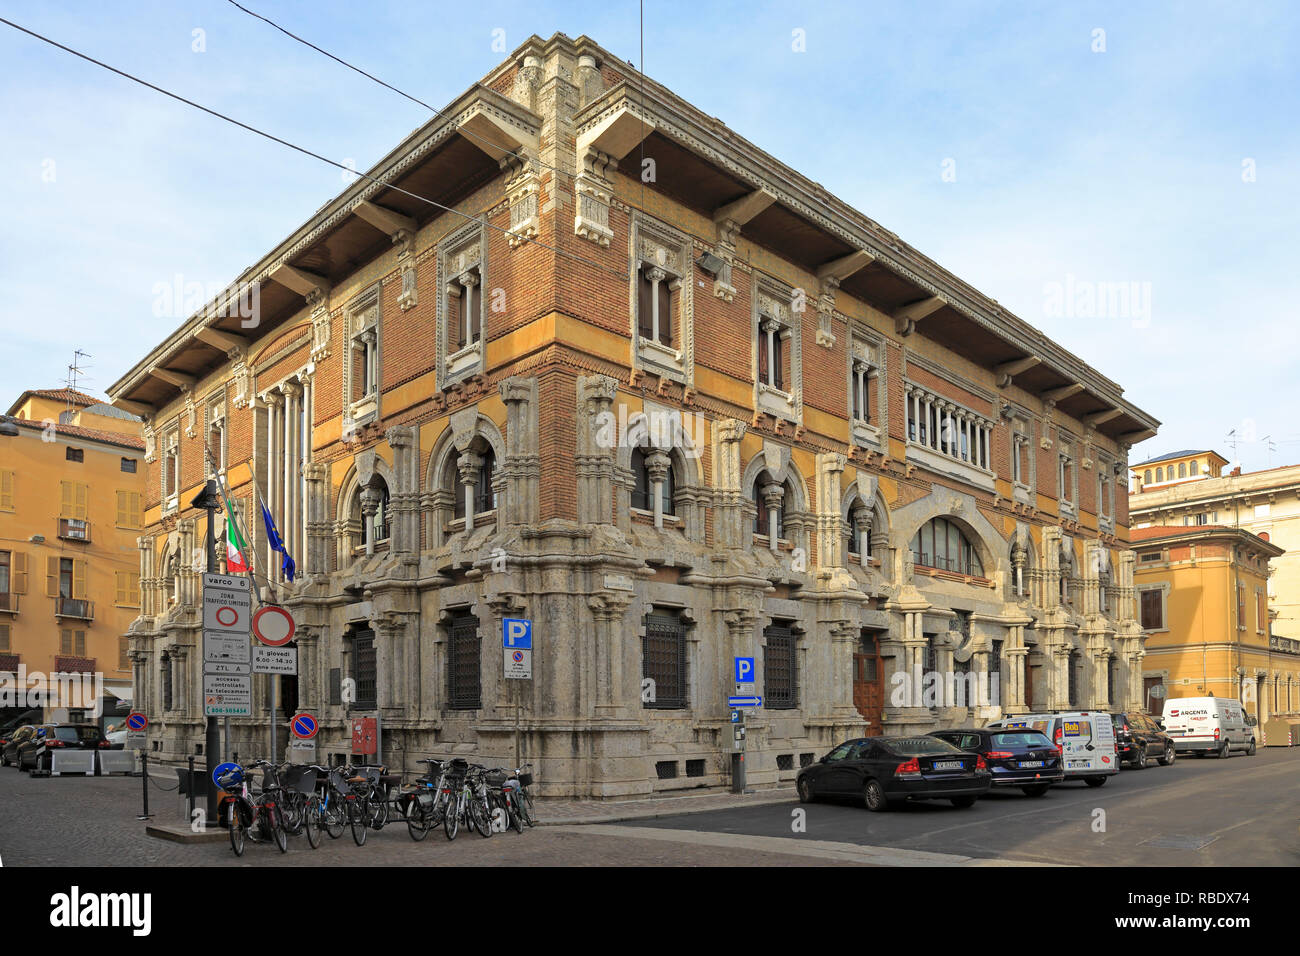 Chamber of Commerce building, Mantua, UNESCO World Heritage Site, Lombardy, Italy. - Stock Image